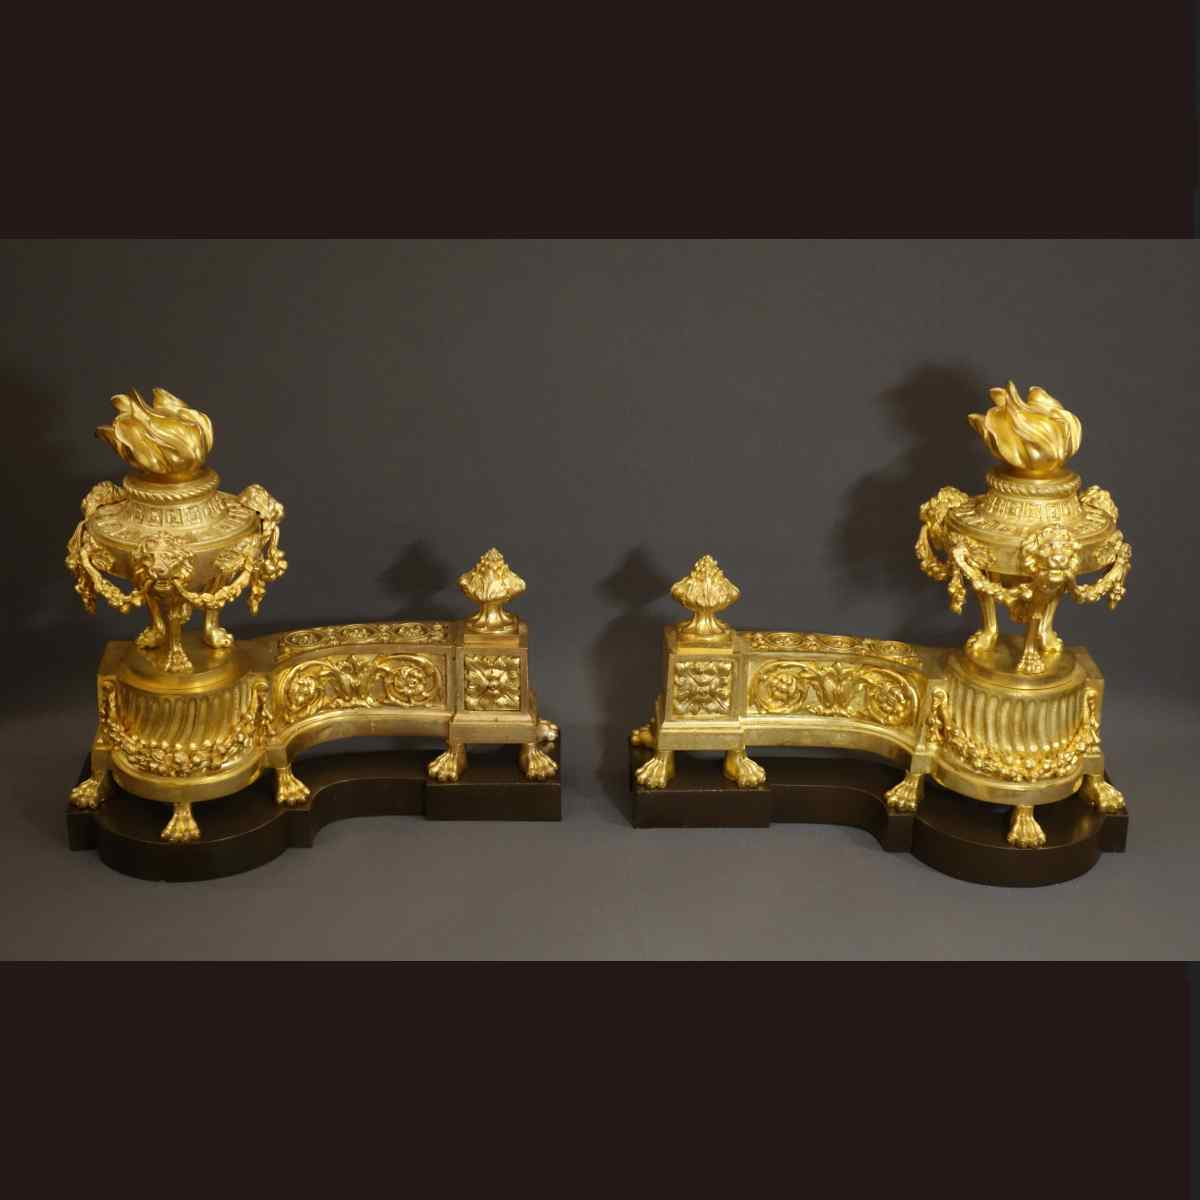 Pair Of Large Andirons According To Caffieri XIXth Century